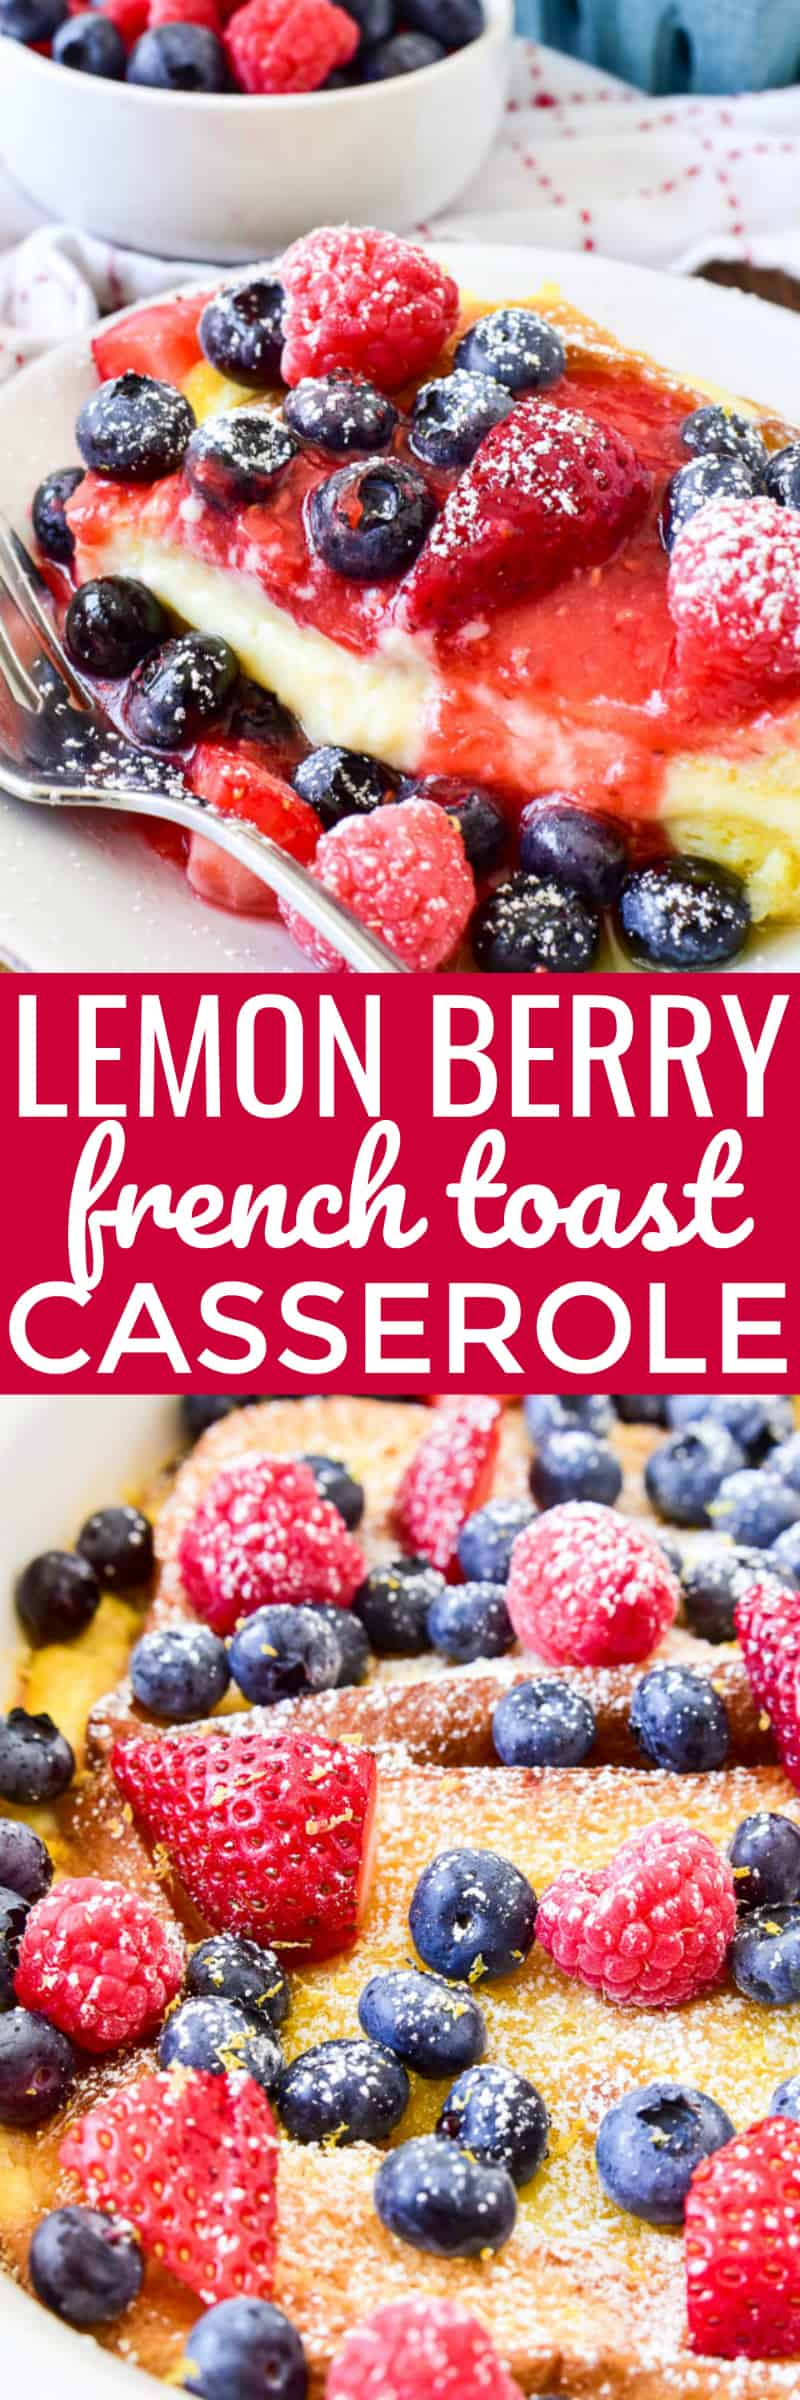 This stuffed French toast has a sweet lemony syrup and a creamy cheesecake filling and is topped with fresh berries and a simple berry sauce. Sprinkle it with powdered sugar and fresh lemon zest for an easy yet elegant brunch recipe that's sure to become a favorite!